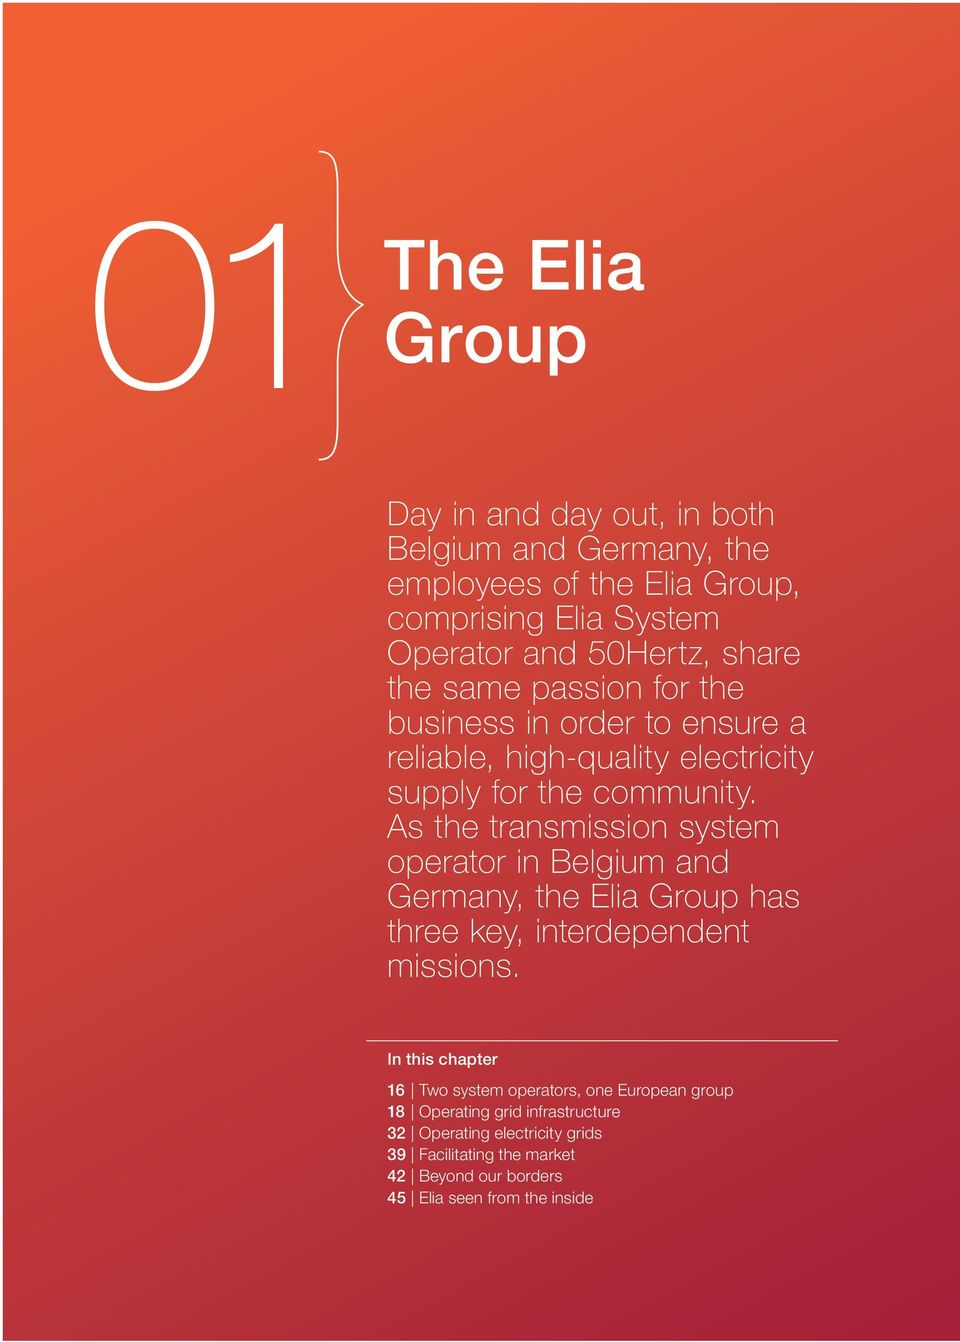 As the transmission system operator in Belgium and Germany, the Elia Group has three key, interdependent missions.